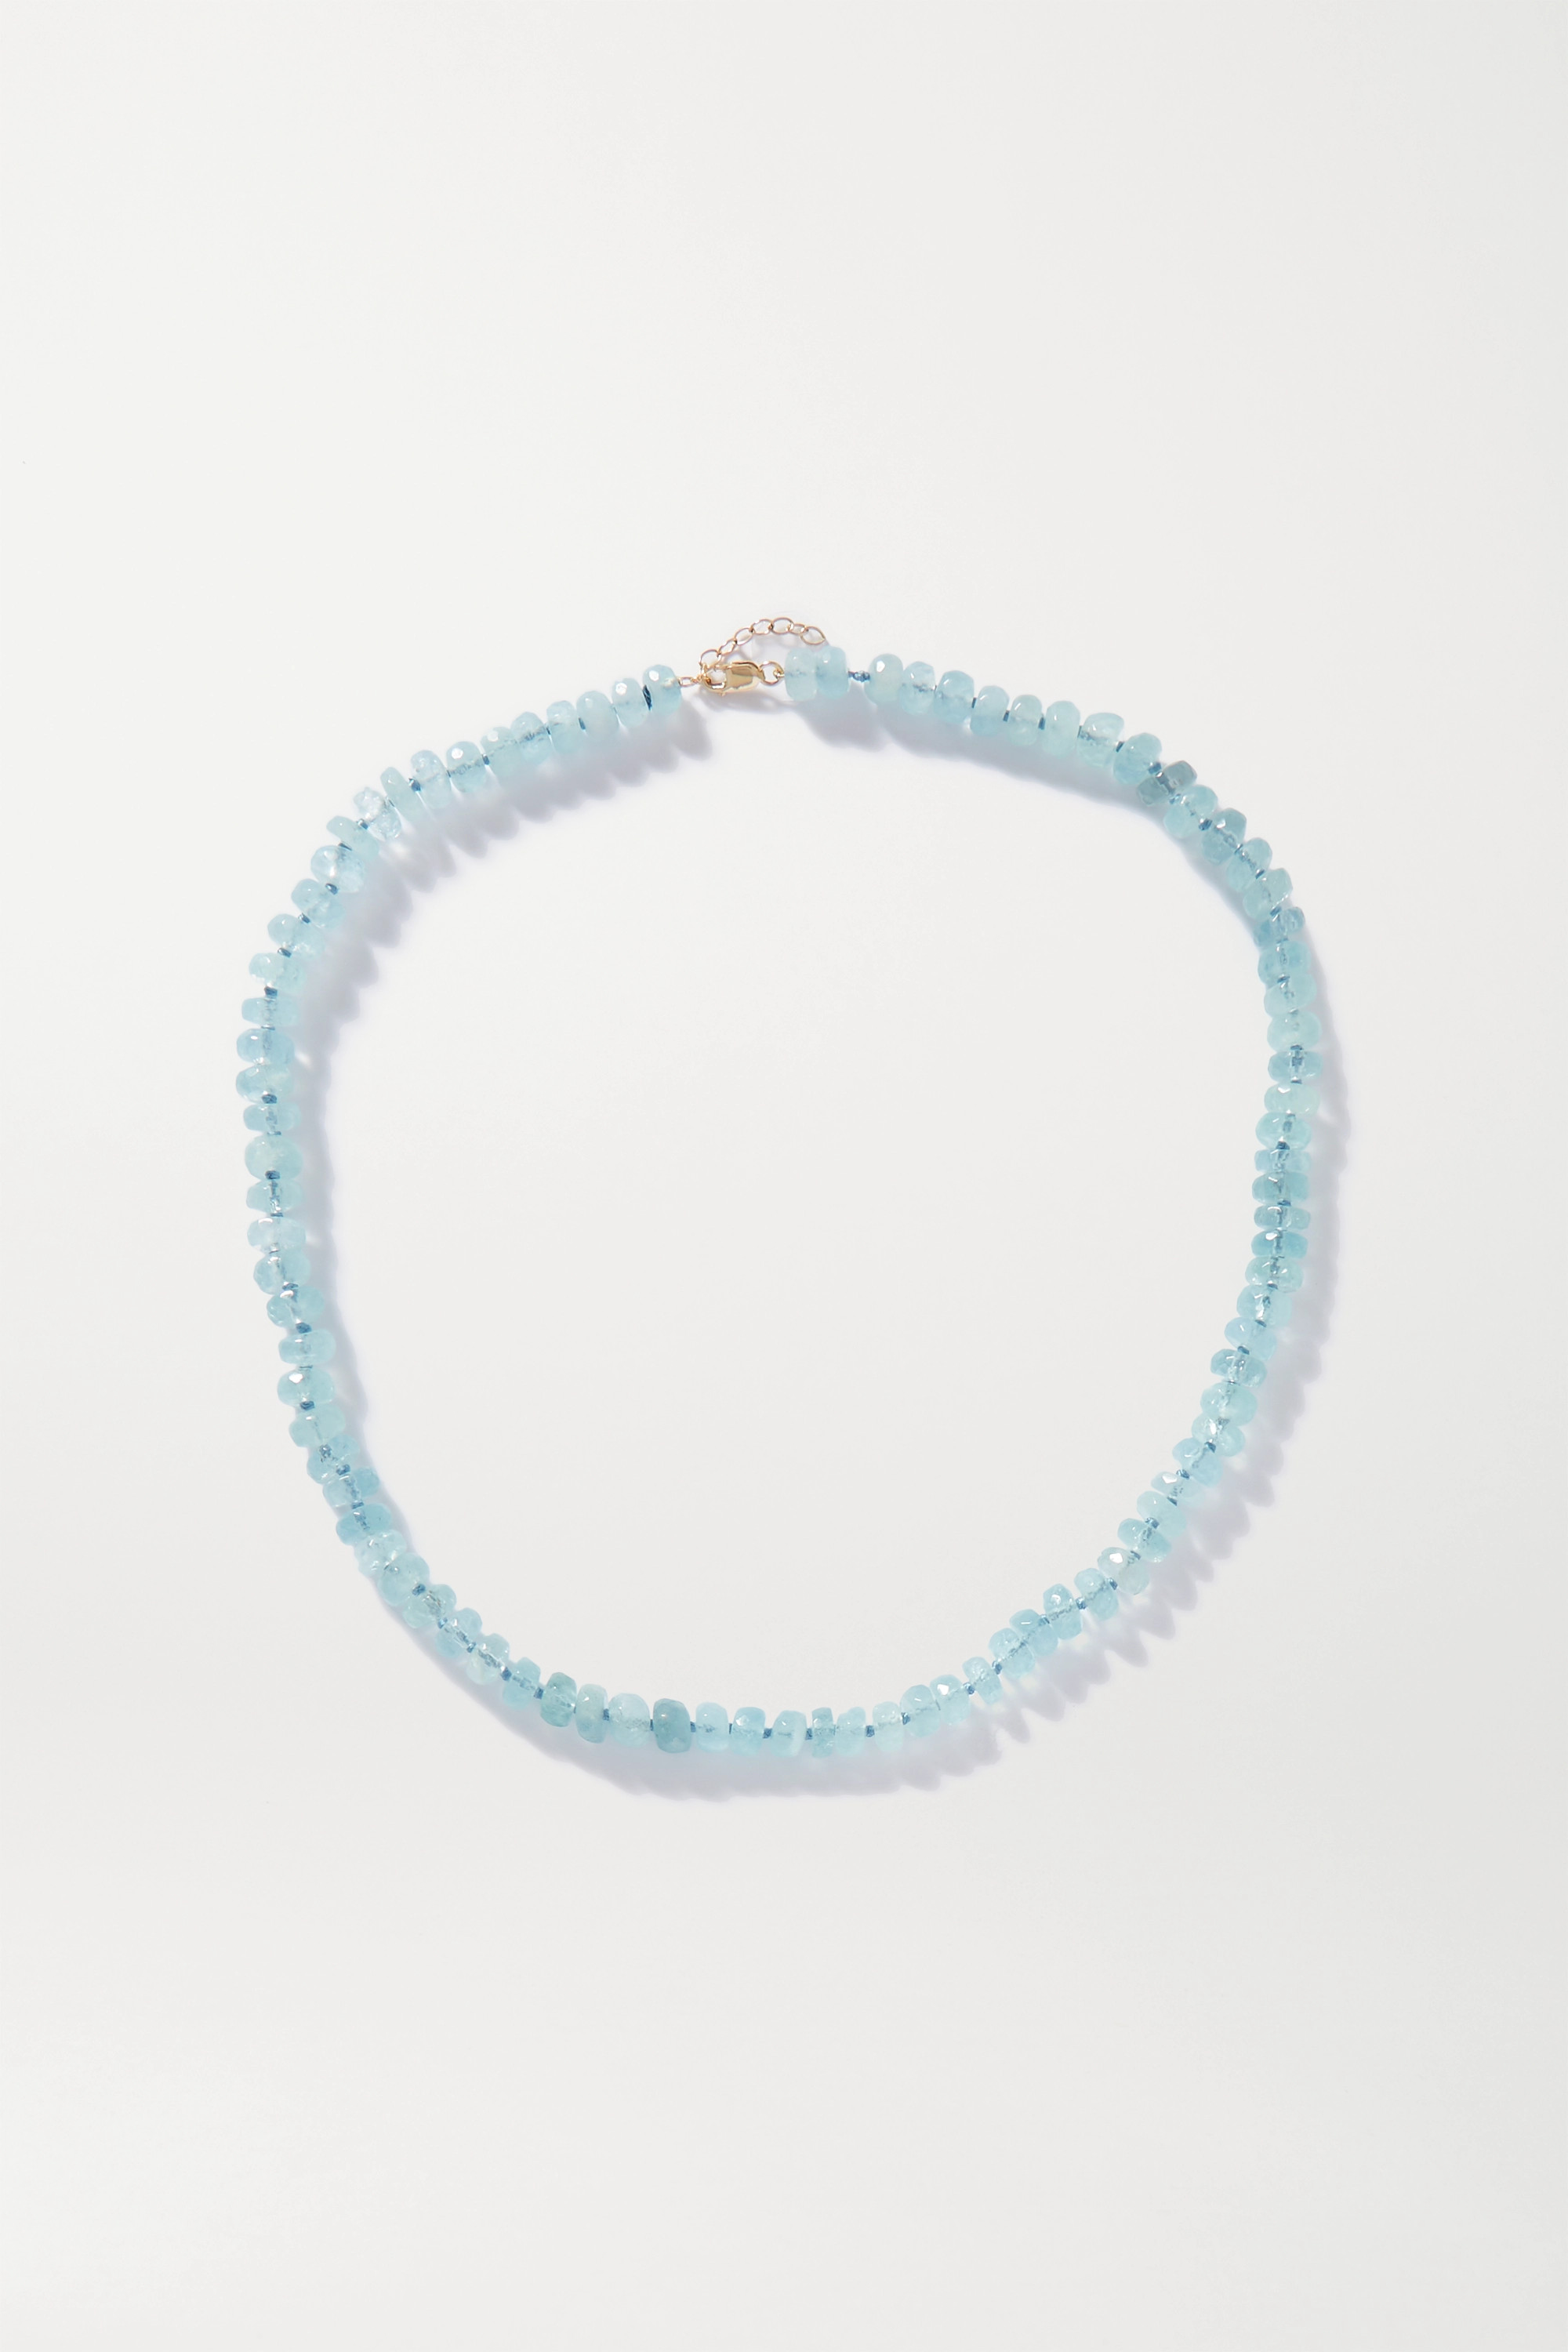 JIA JIA Oracle gold aquamarine necklace